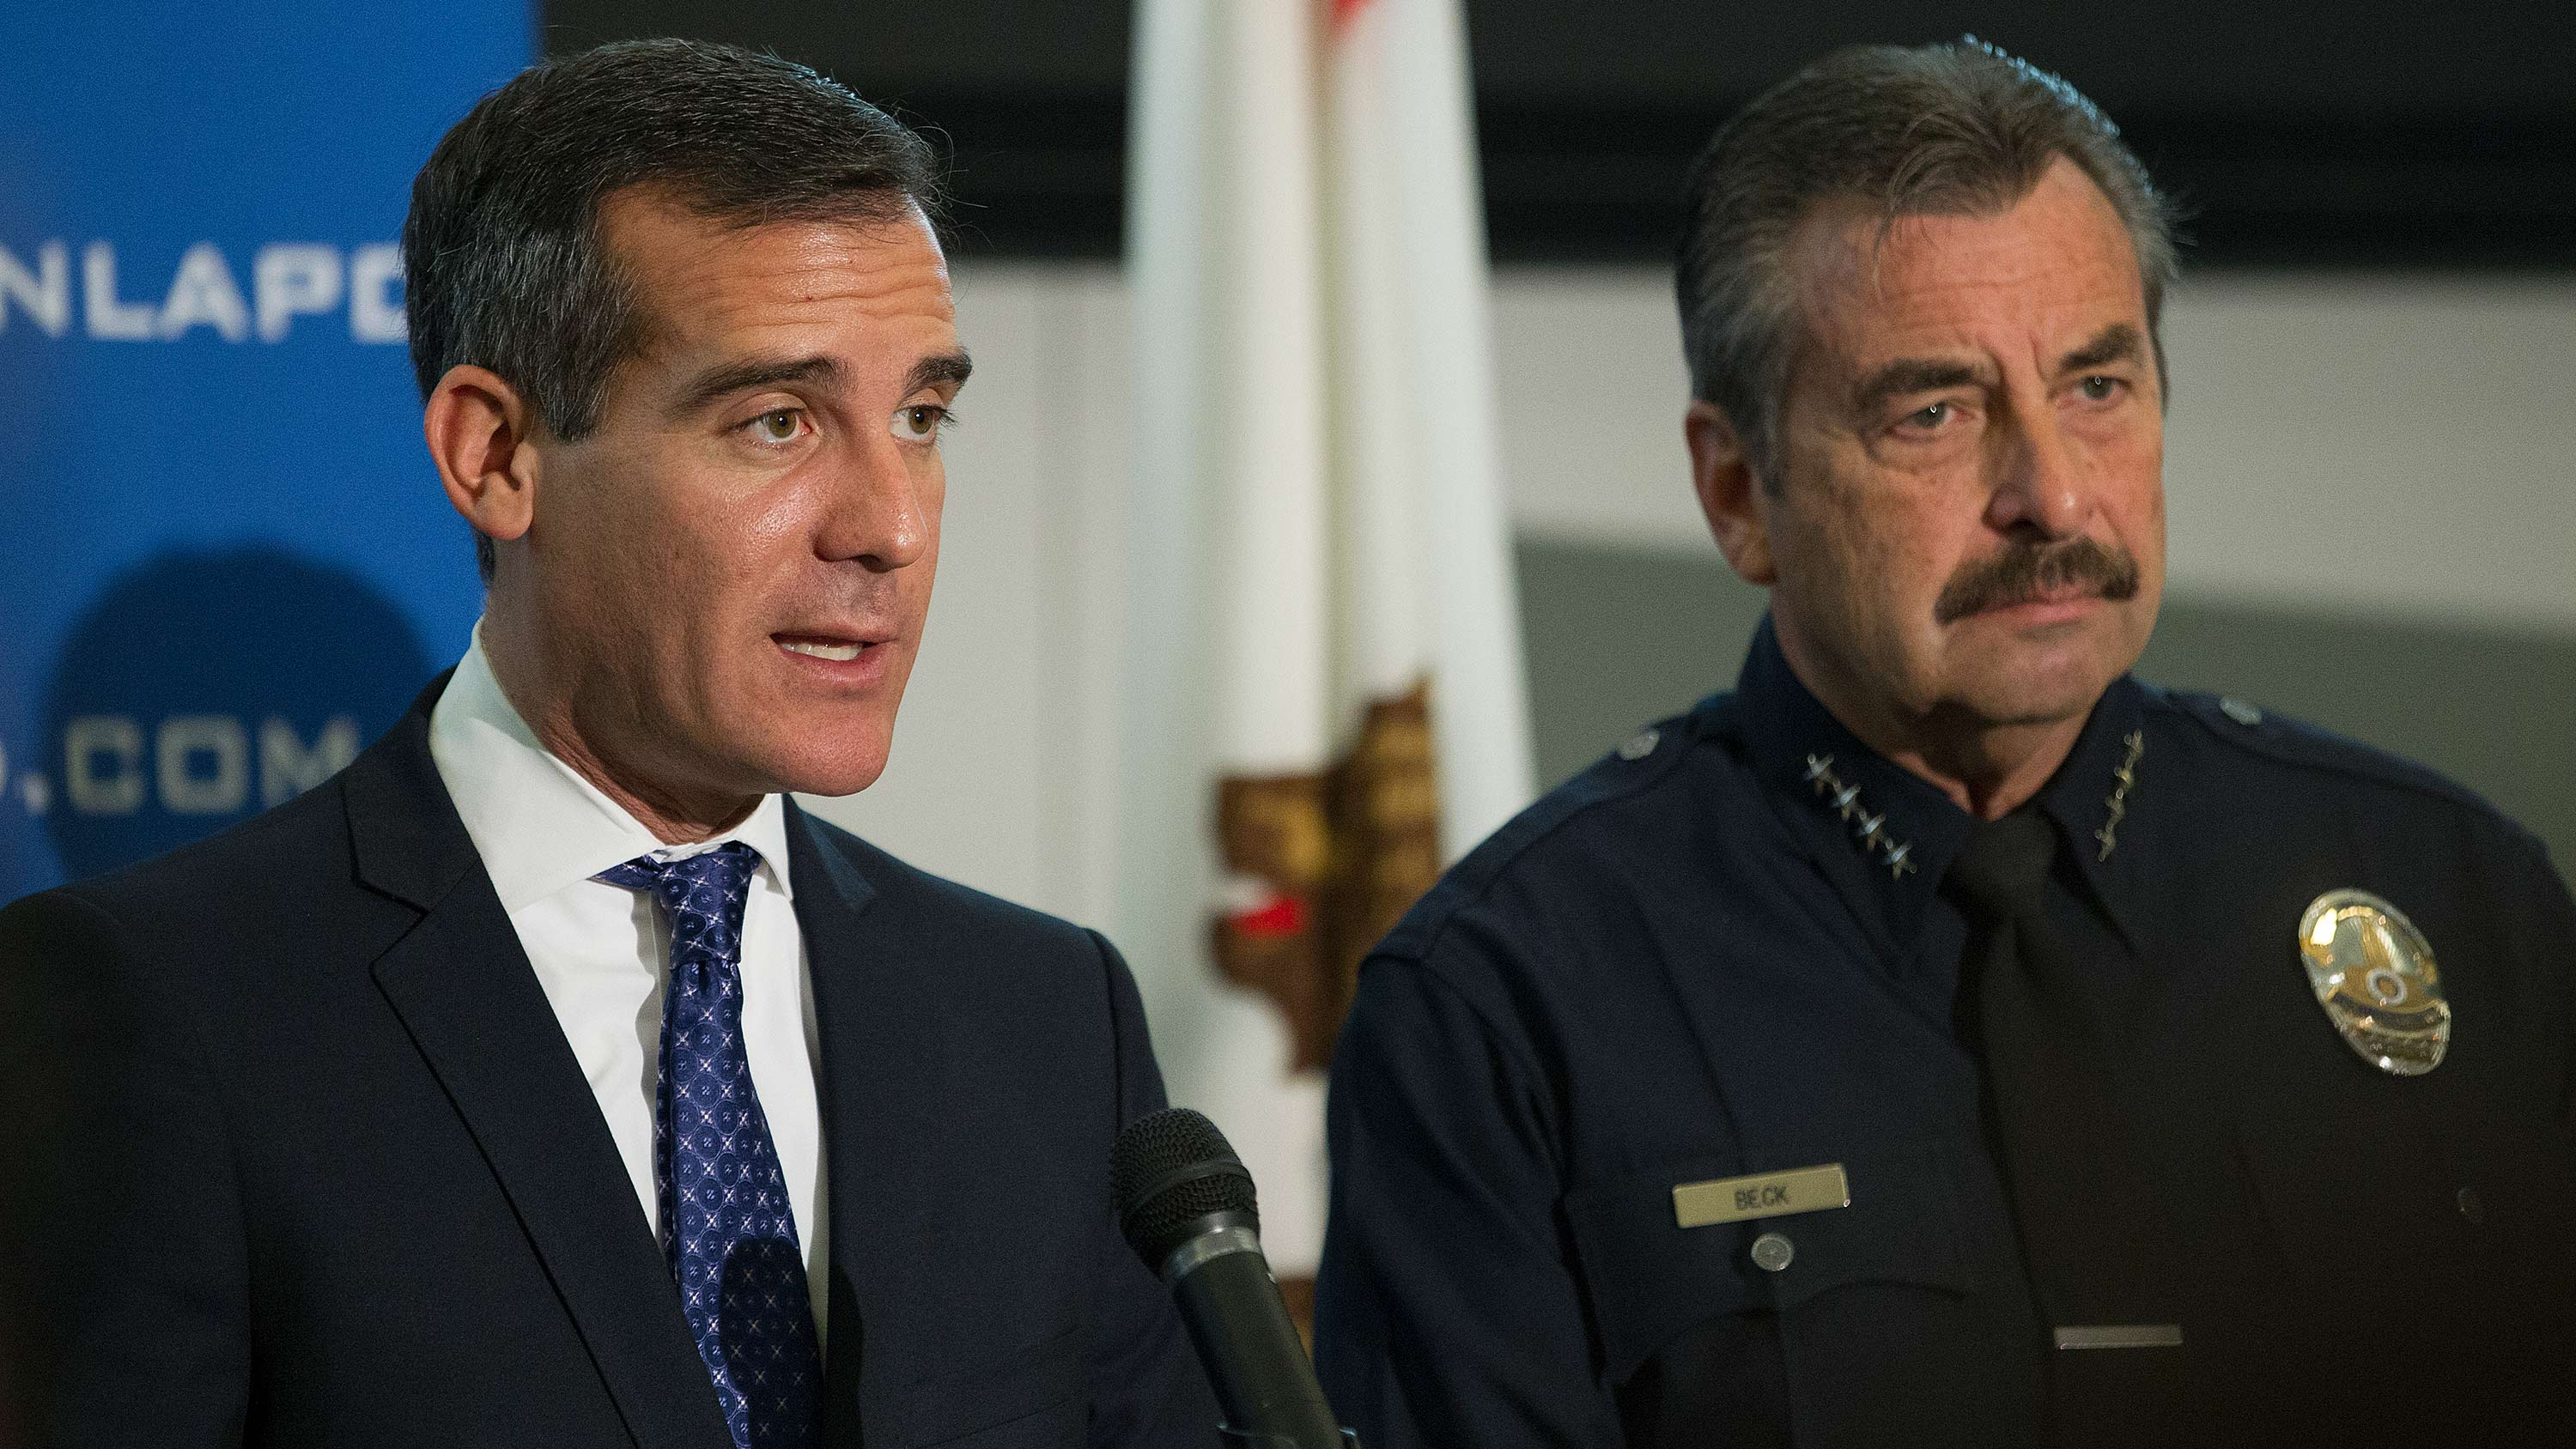 L.A. Mayor Eric Garcetti and LAPD Chief Charlie Beck in Jan. 2014 | photo by Scott L via Wikimedia Commons